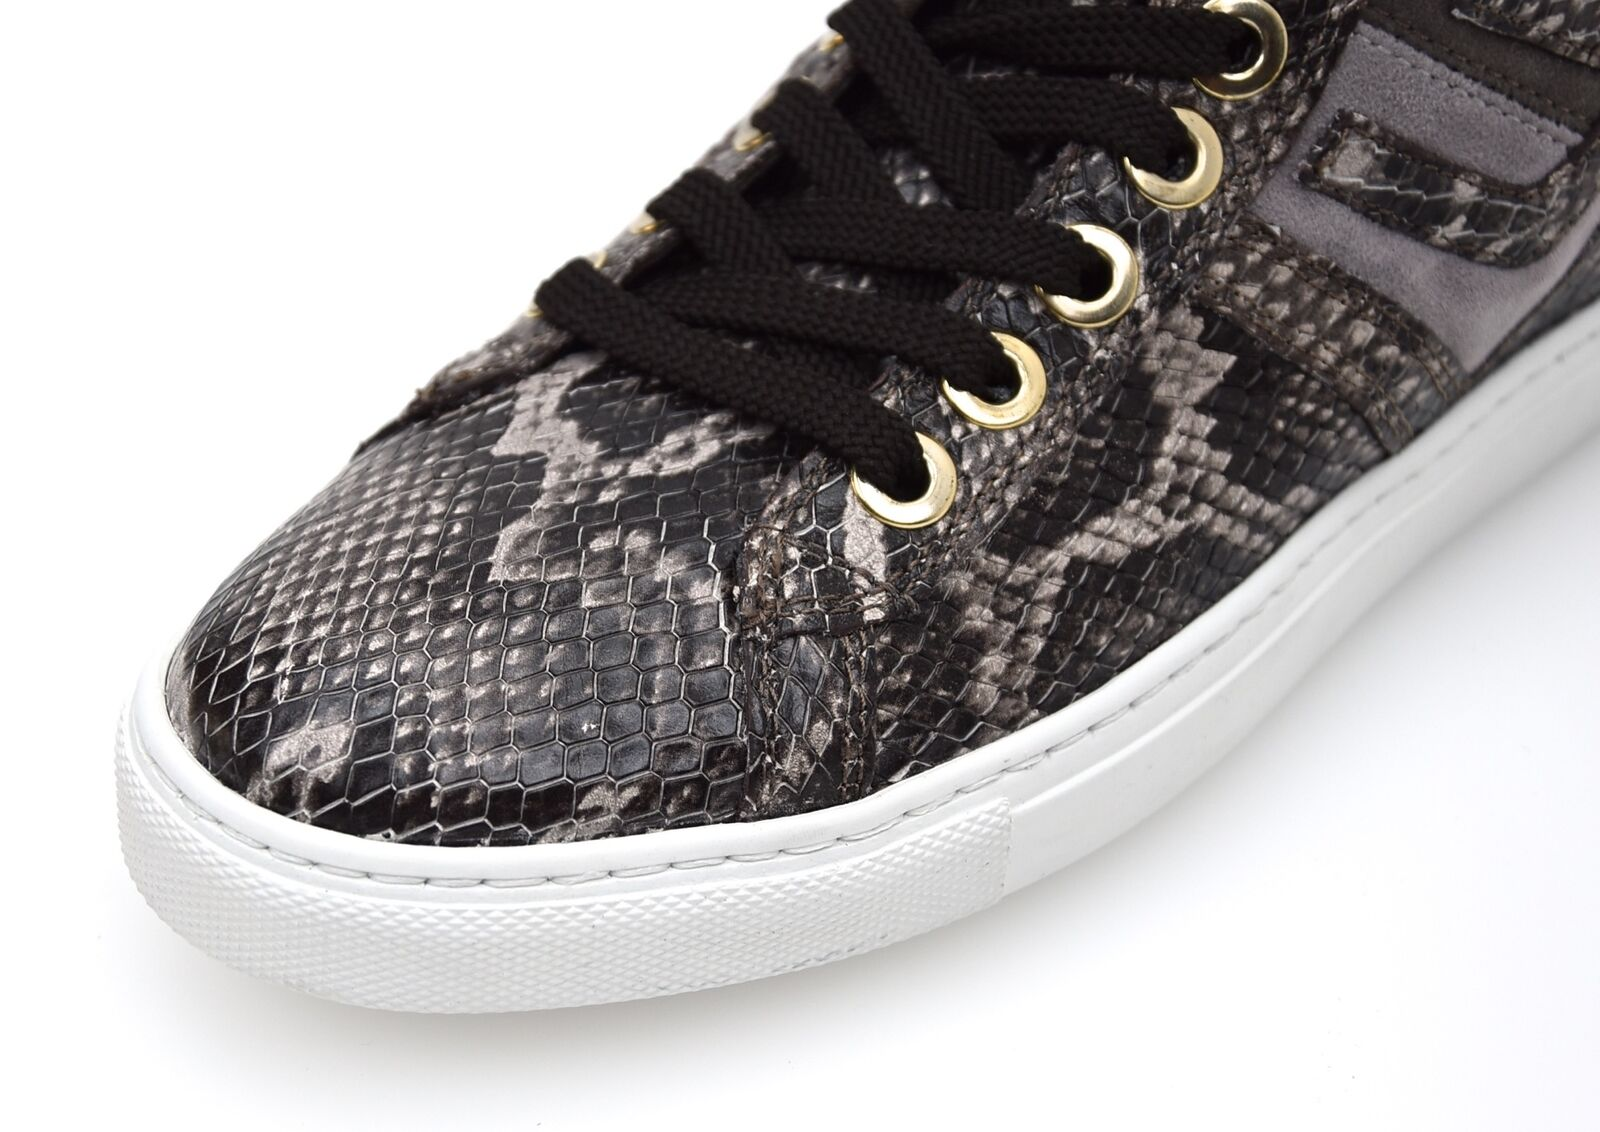 4US CESARE PACIOTTI DAMEN TURNSCHUHE FREIZEITSCHUHE SNEAKER CASUAL ART. 00LD7SY 00LD7SY 00LD7SY 239c1a